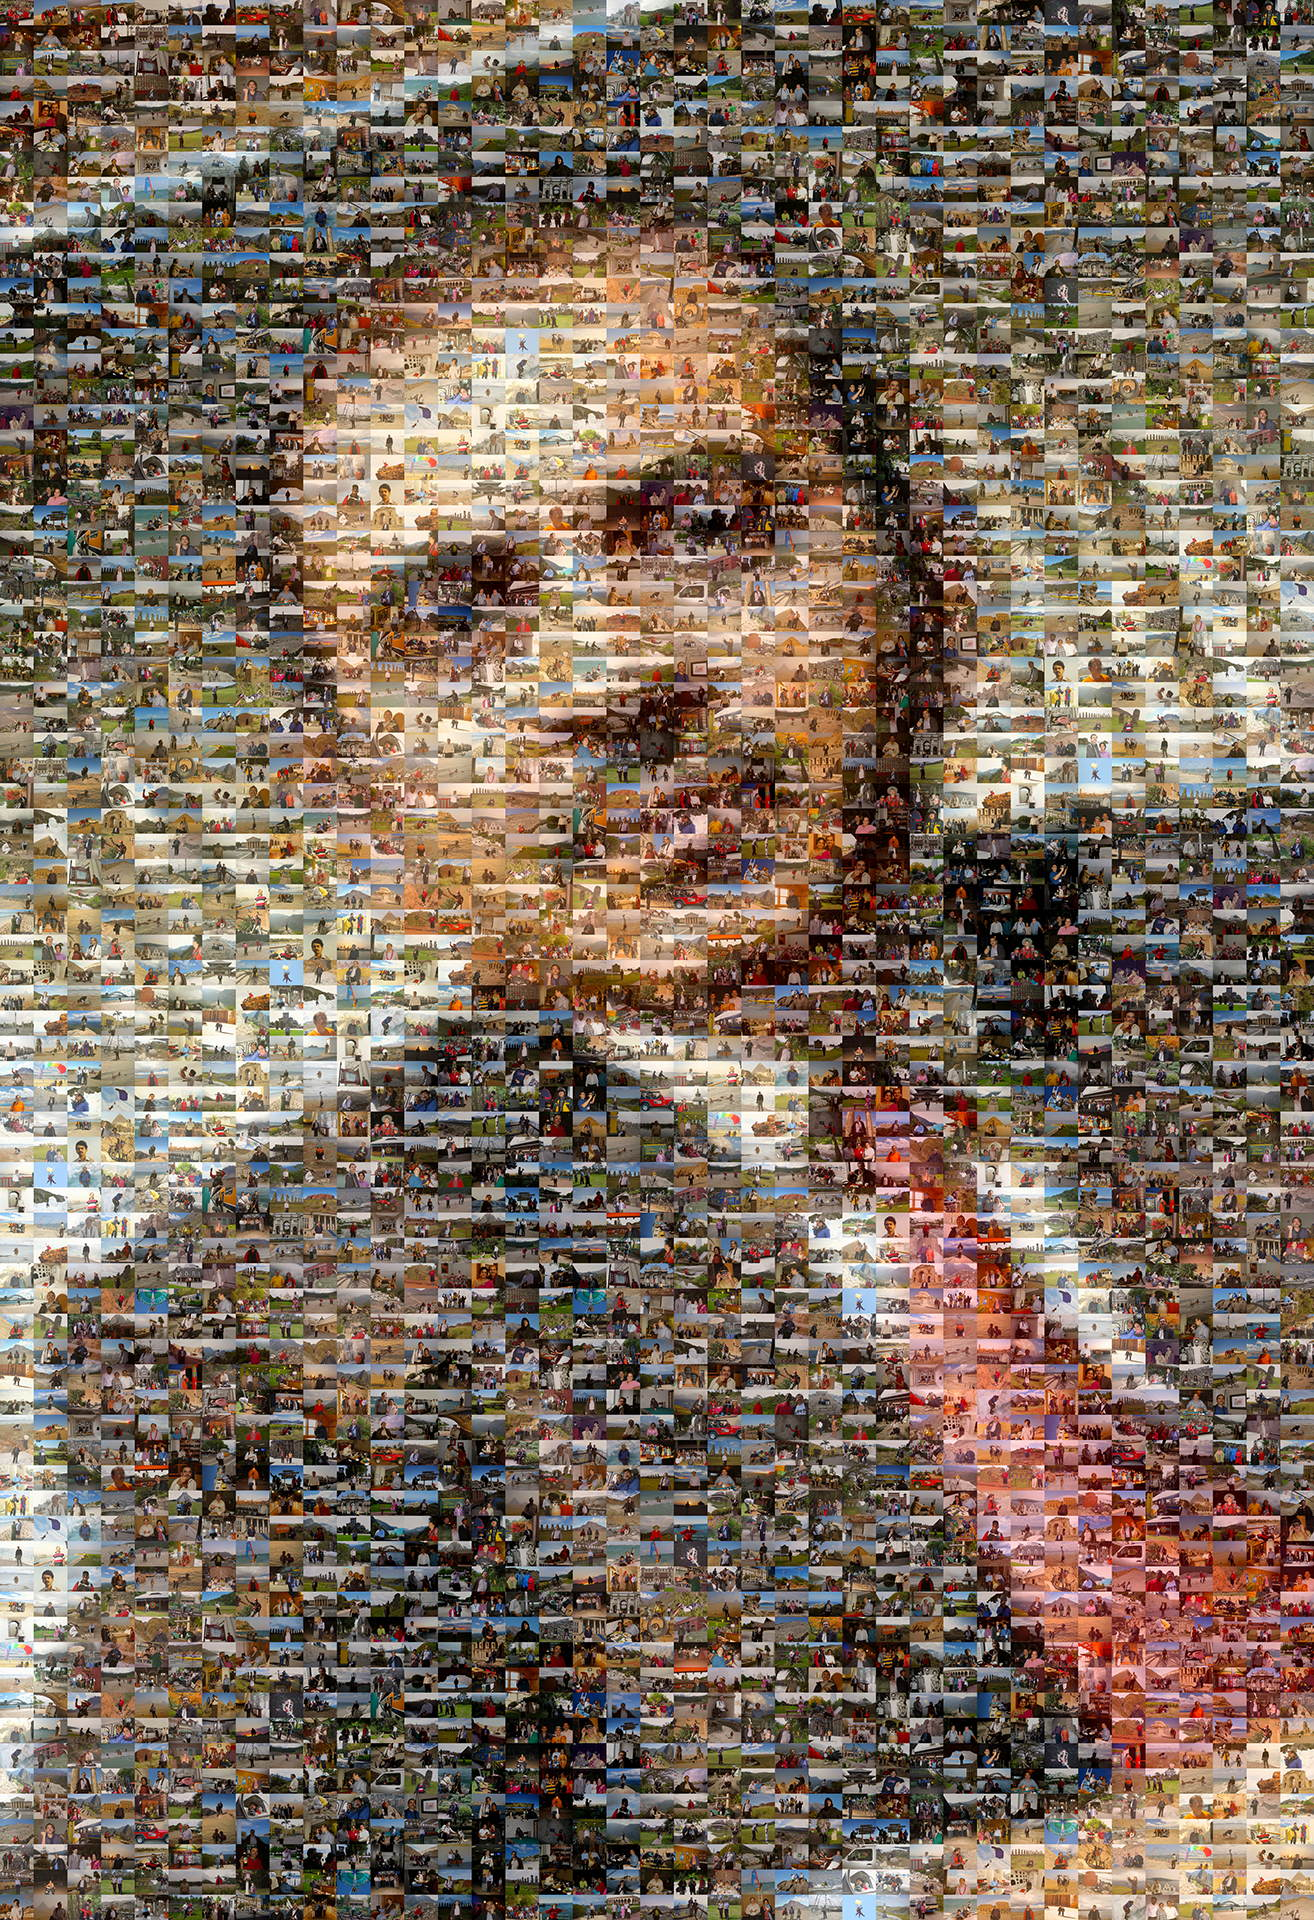 photo mosaic created using 550 Lifetime photos